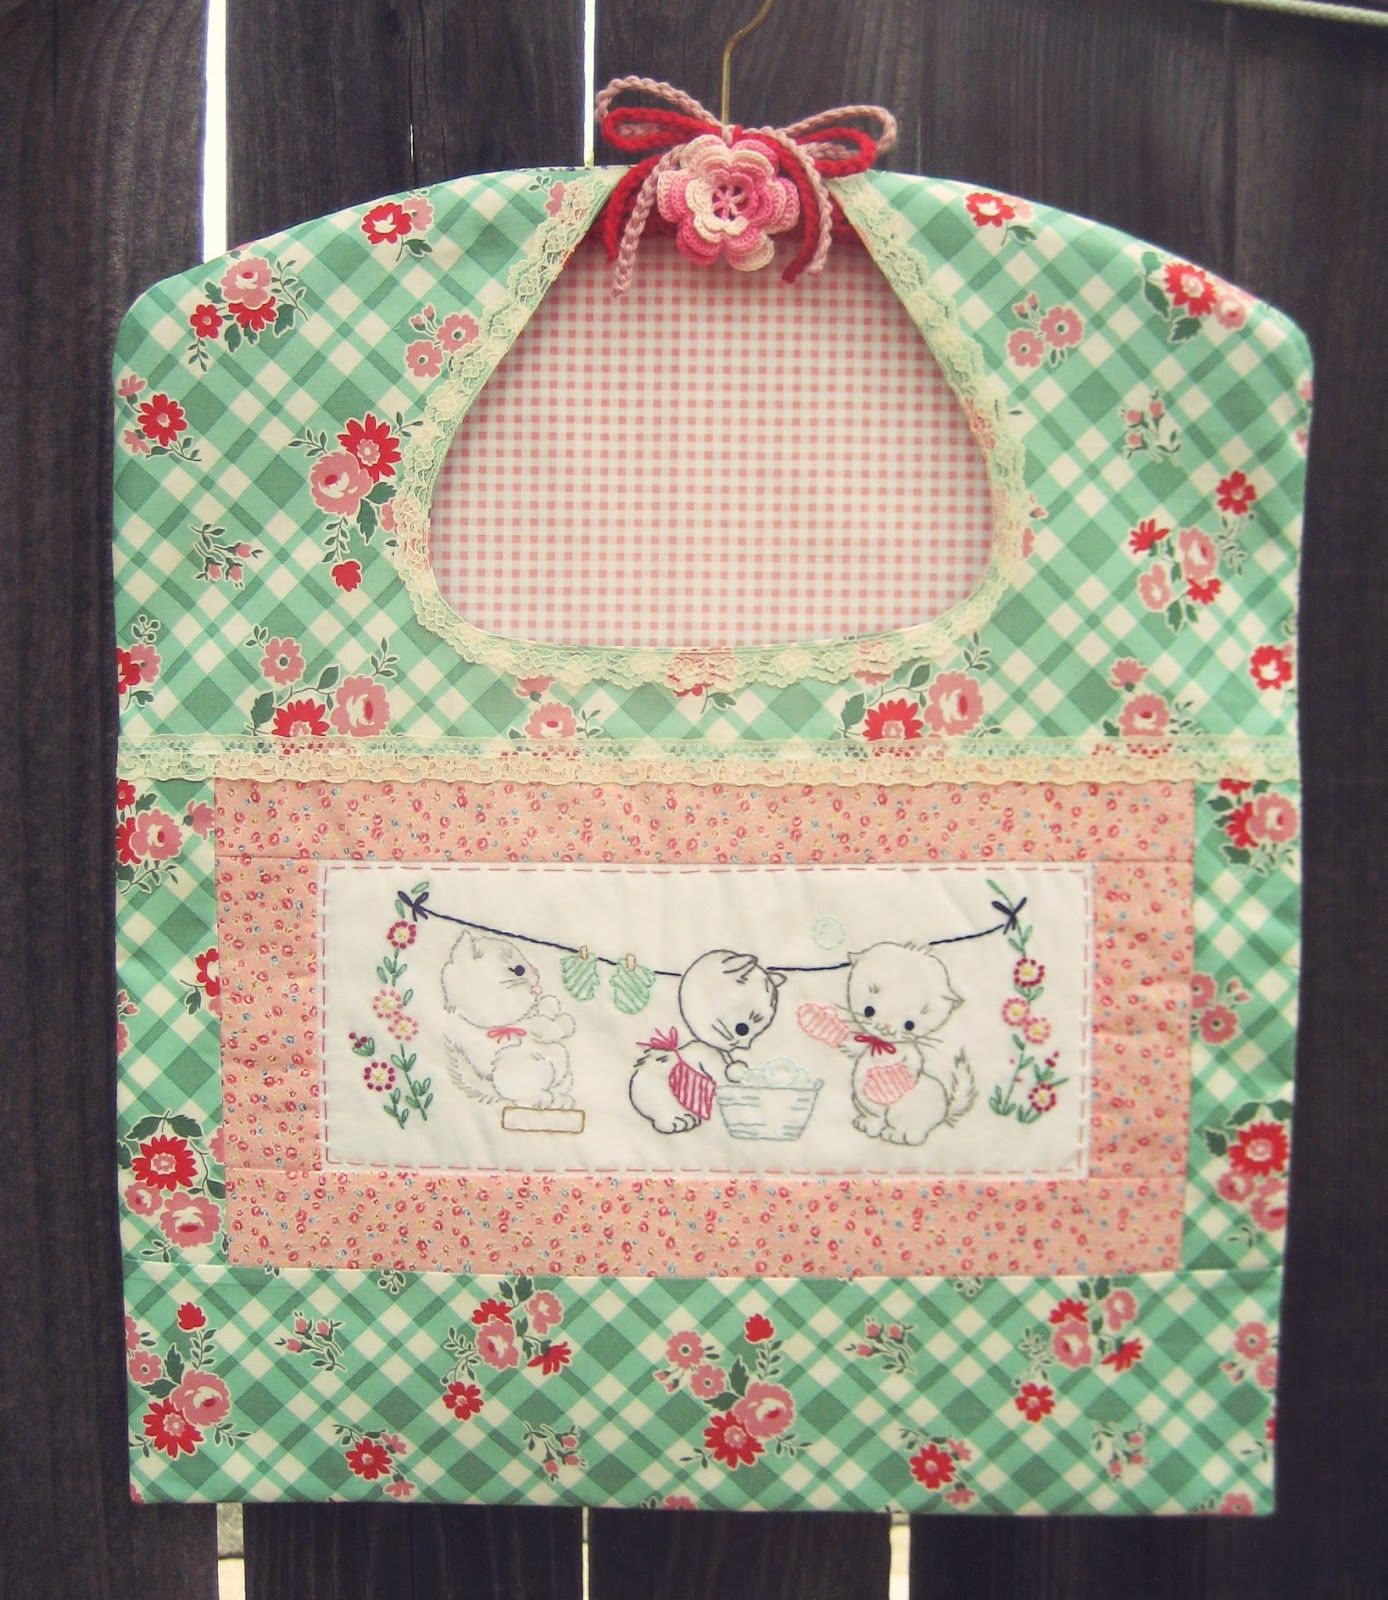 Sweet Kittens Clothespin Bag Using A Pretty Picnic Green